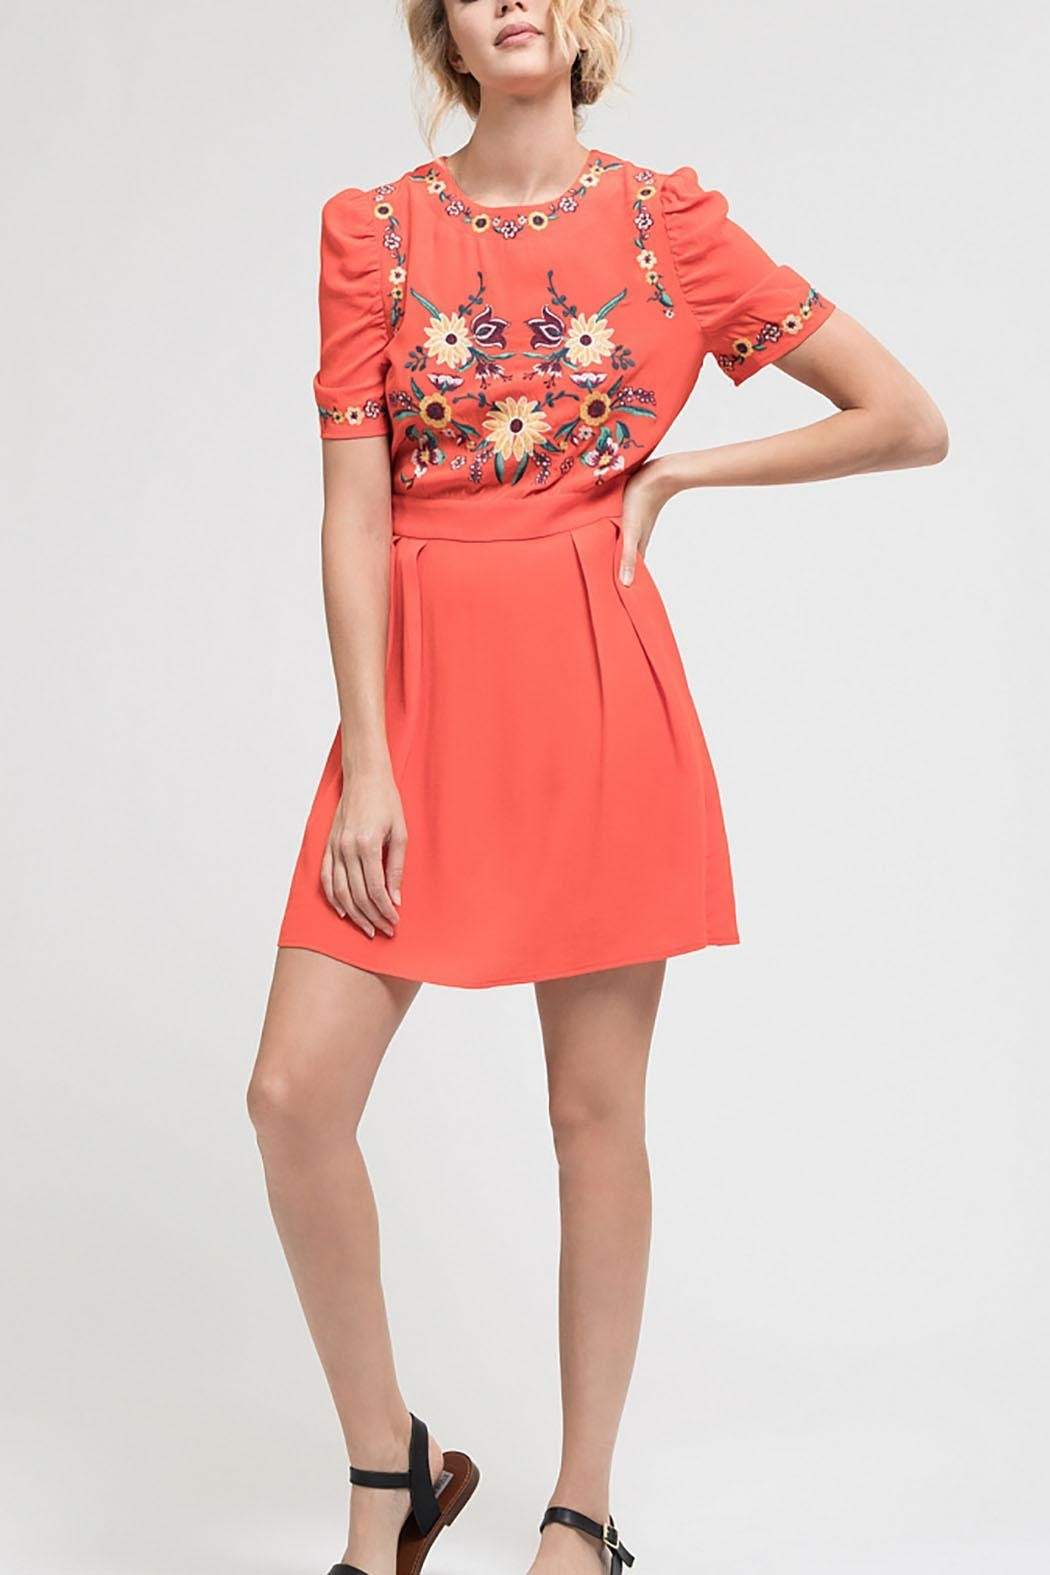 Blu Pepper Pleated Embroidered Dress - Front Cropped Image